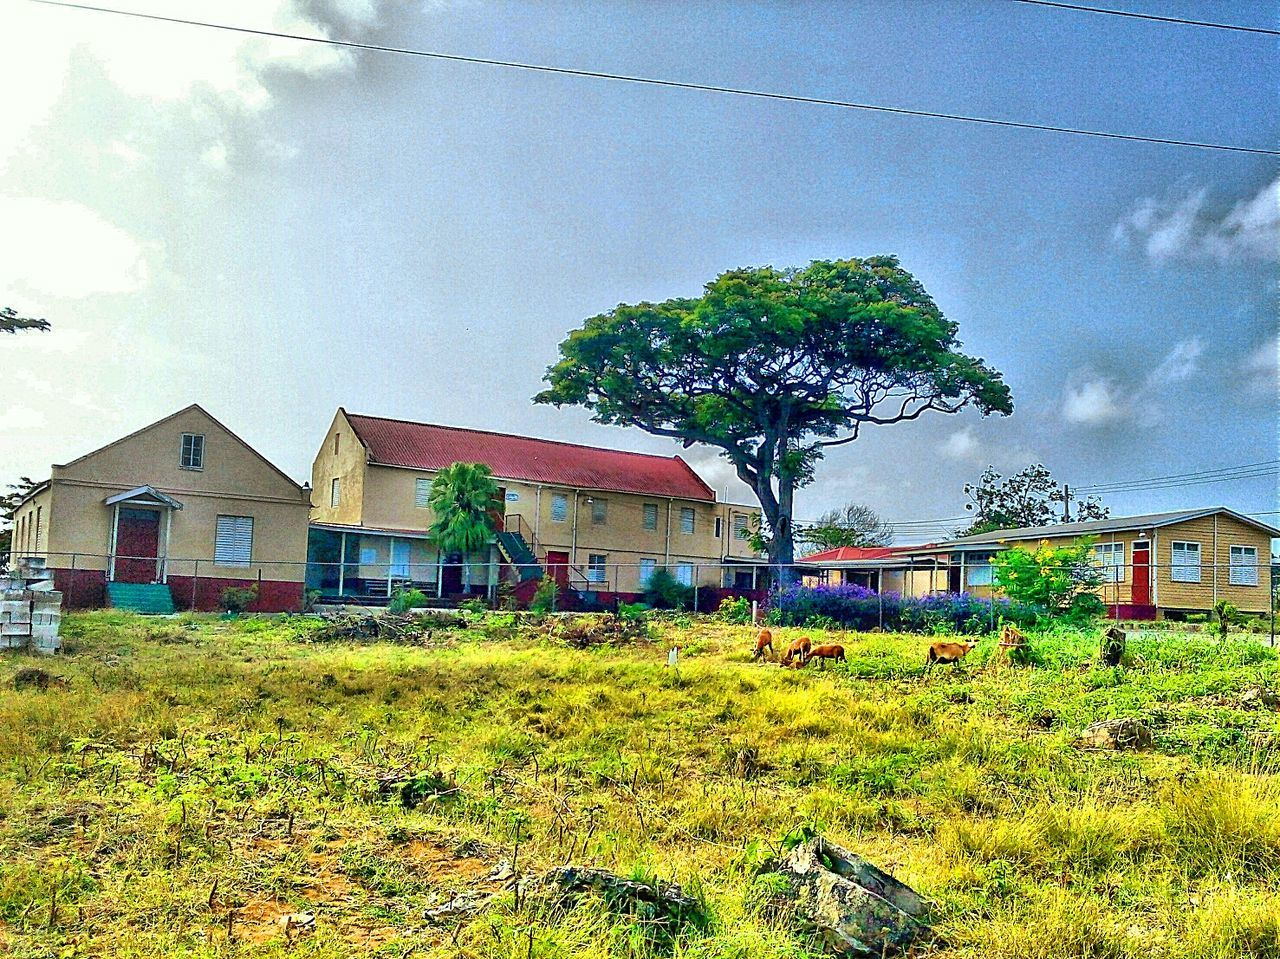 architecture, building exterior, built structure, house, sky, tree, outdoors, cloud - sky, no people, day, grass, residential building, nature